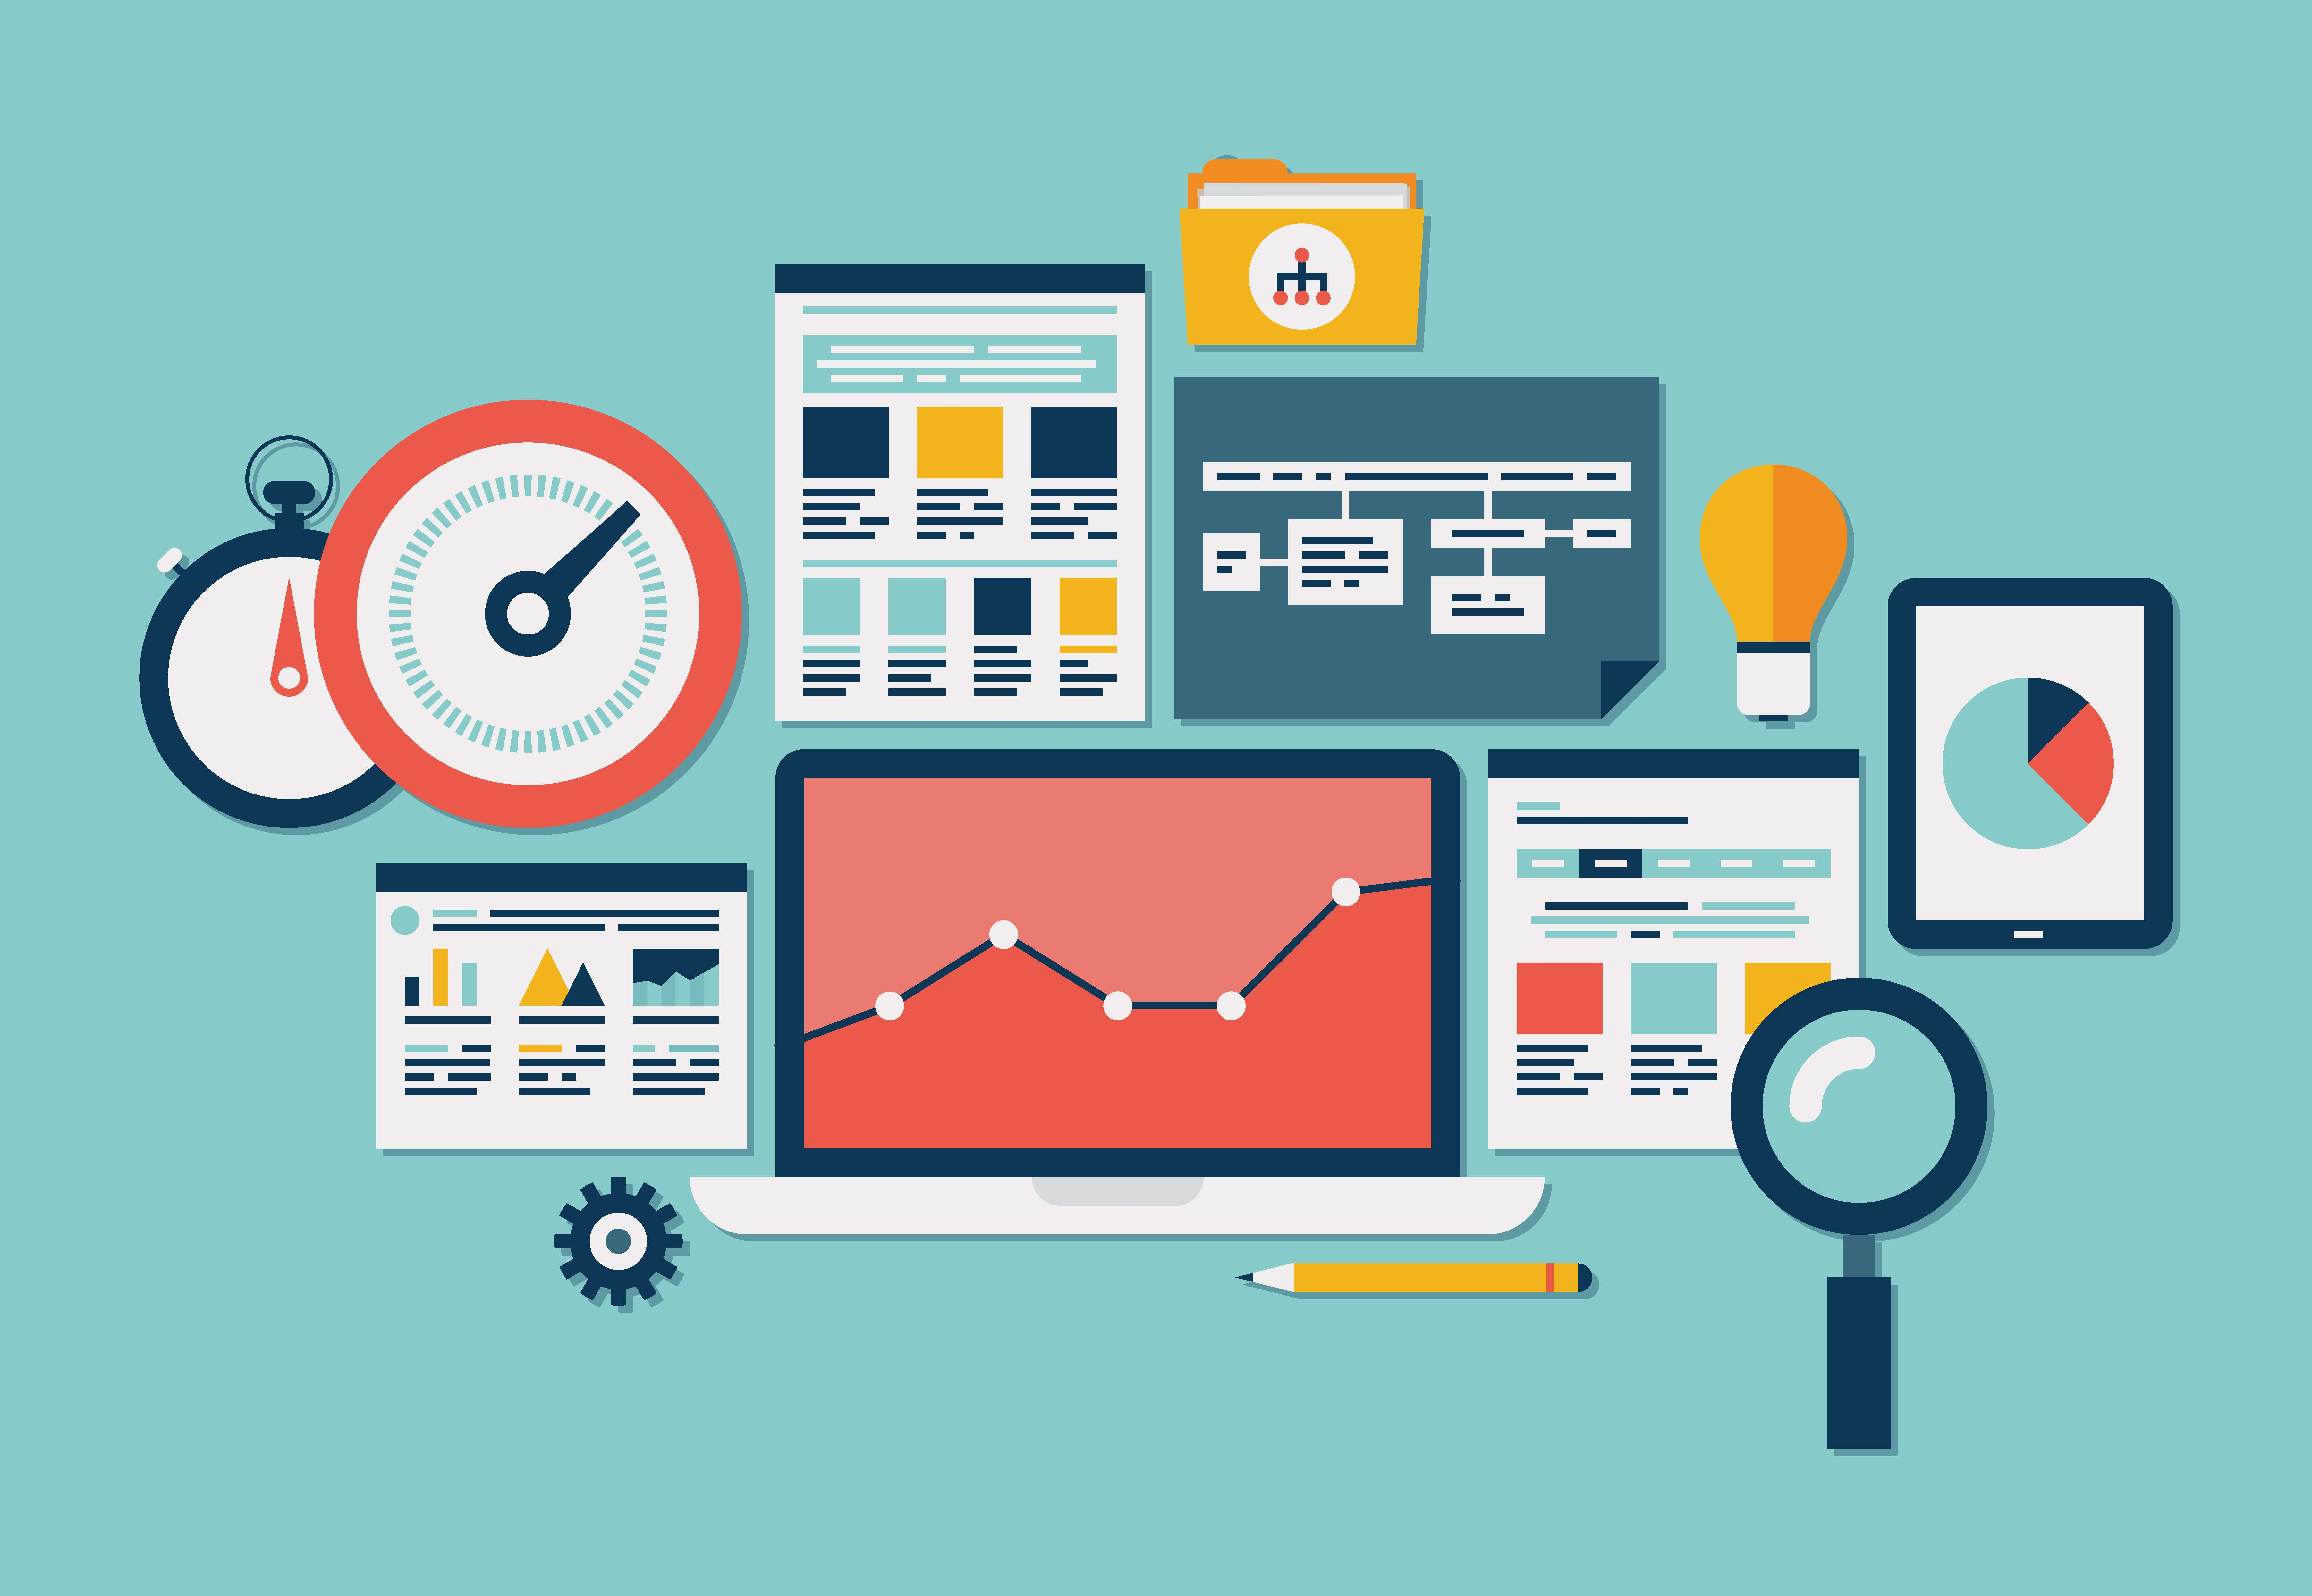 Are online custom research services real?